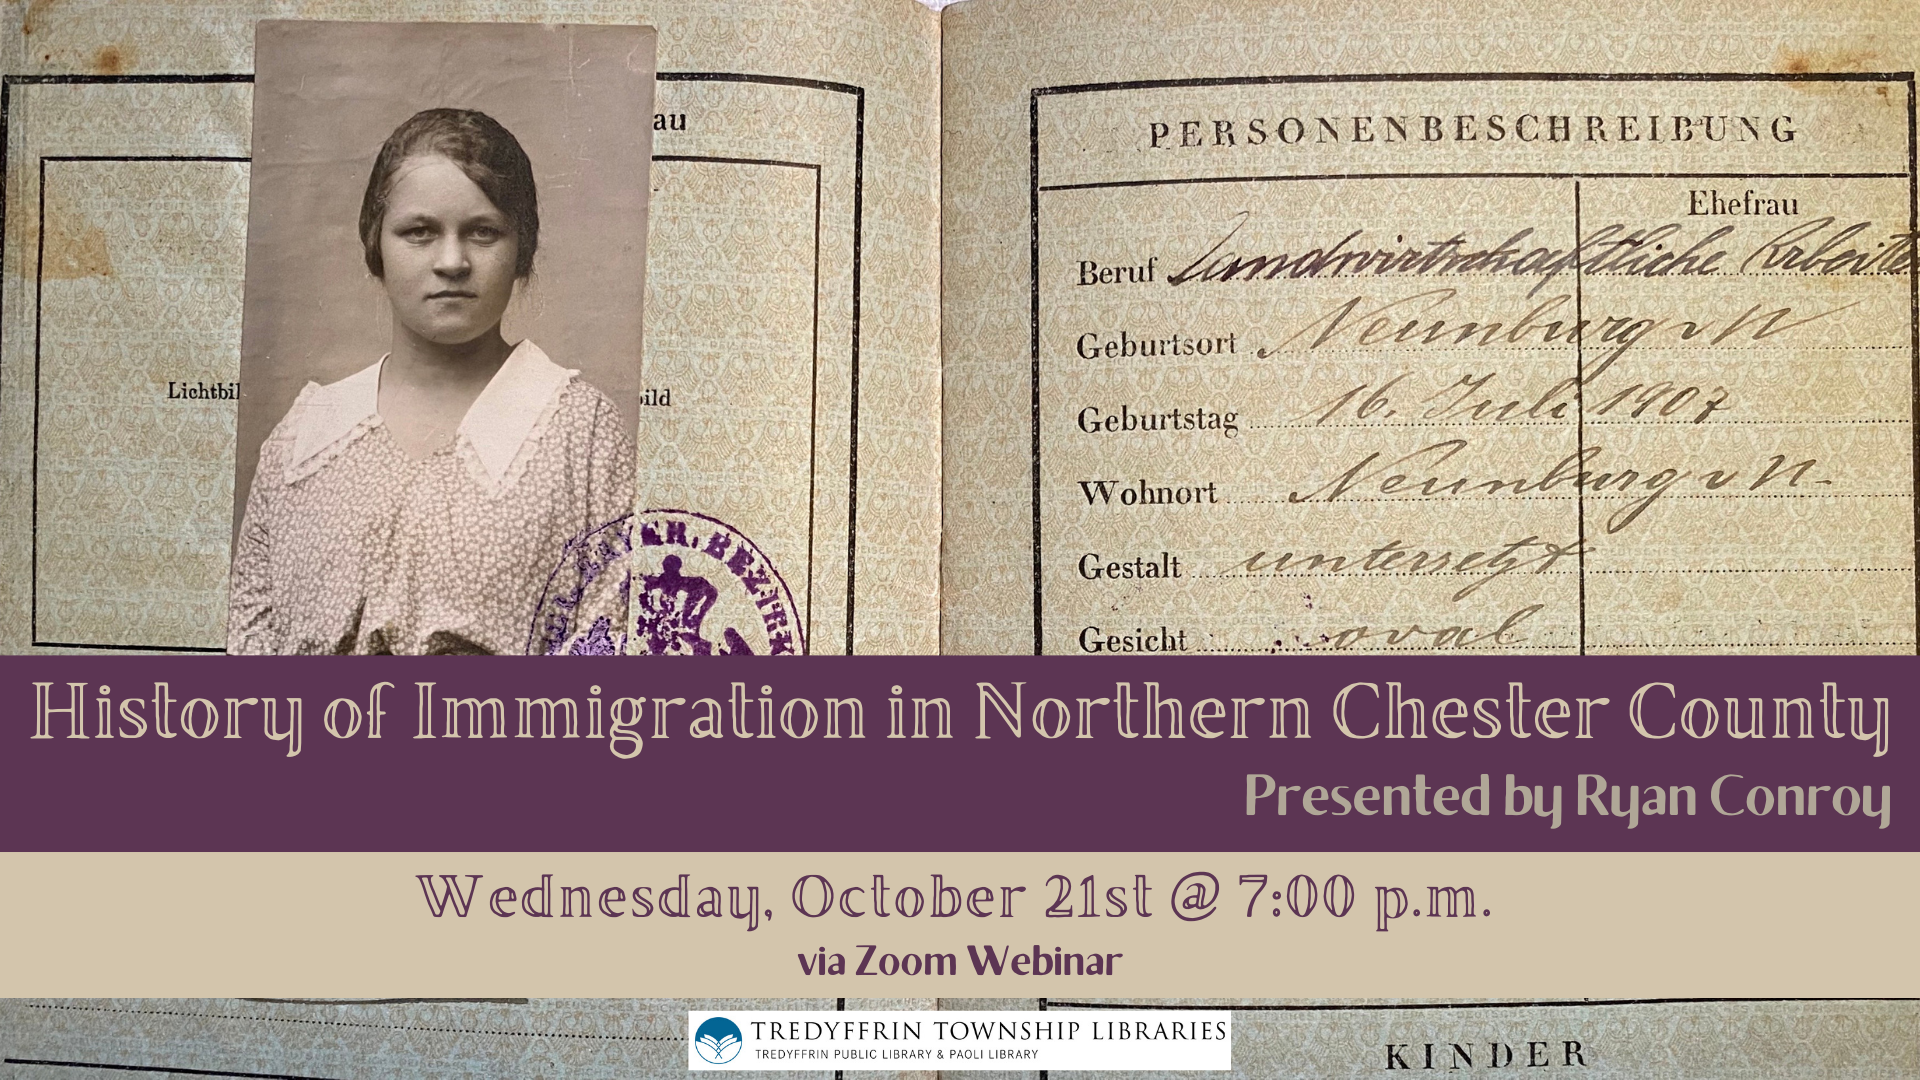 History of Immigration in Northern Chester County presented by Ryan Conroy